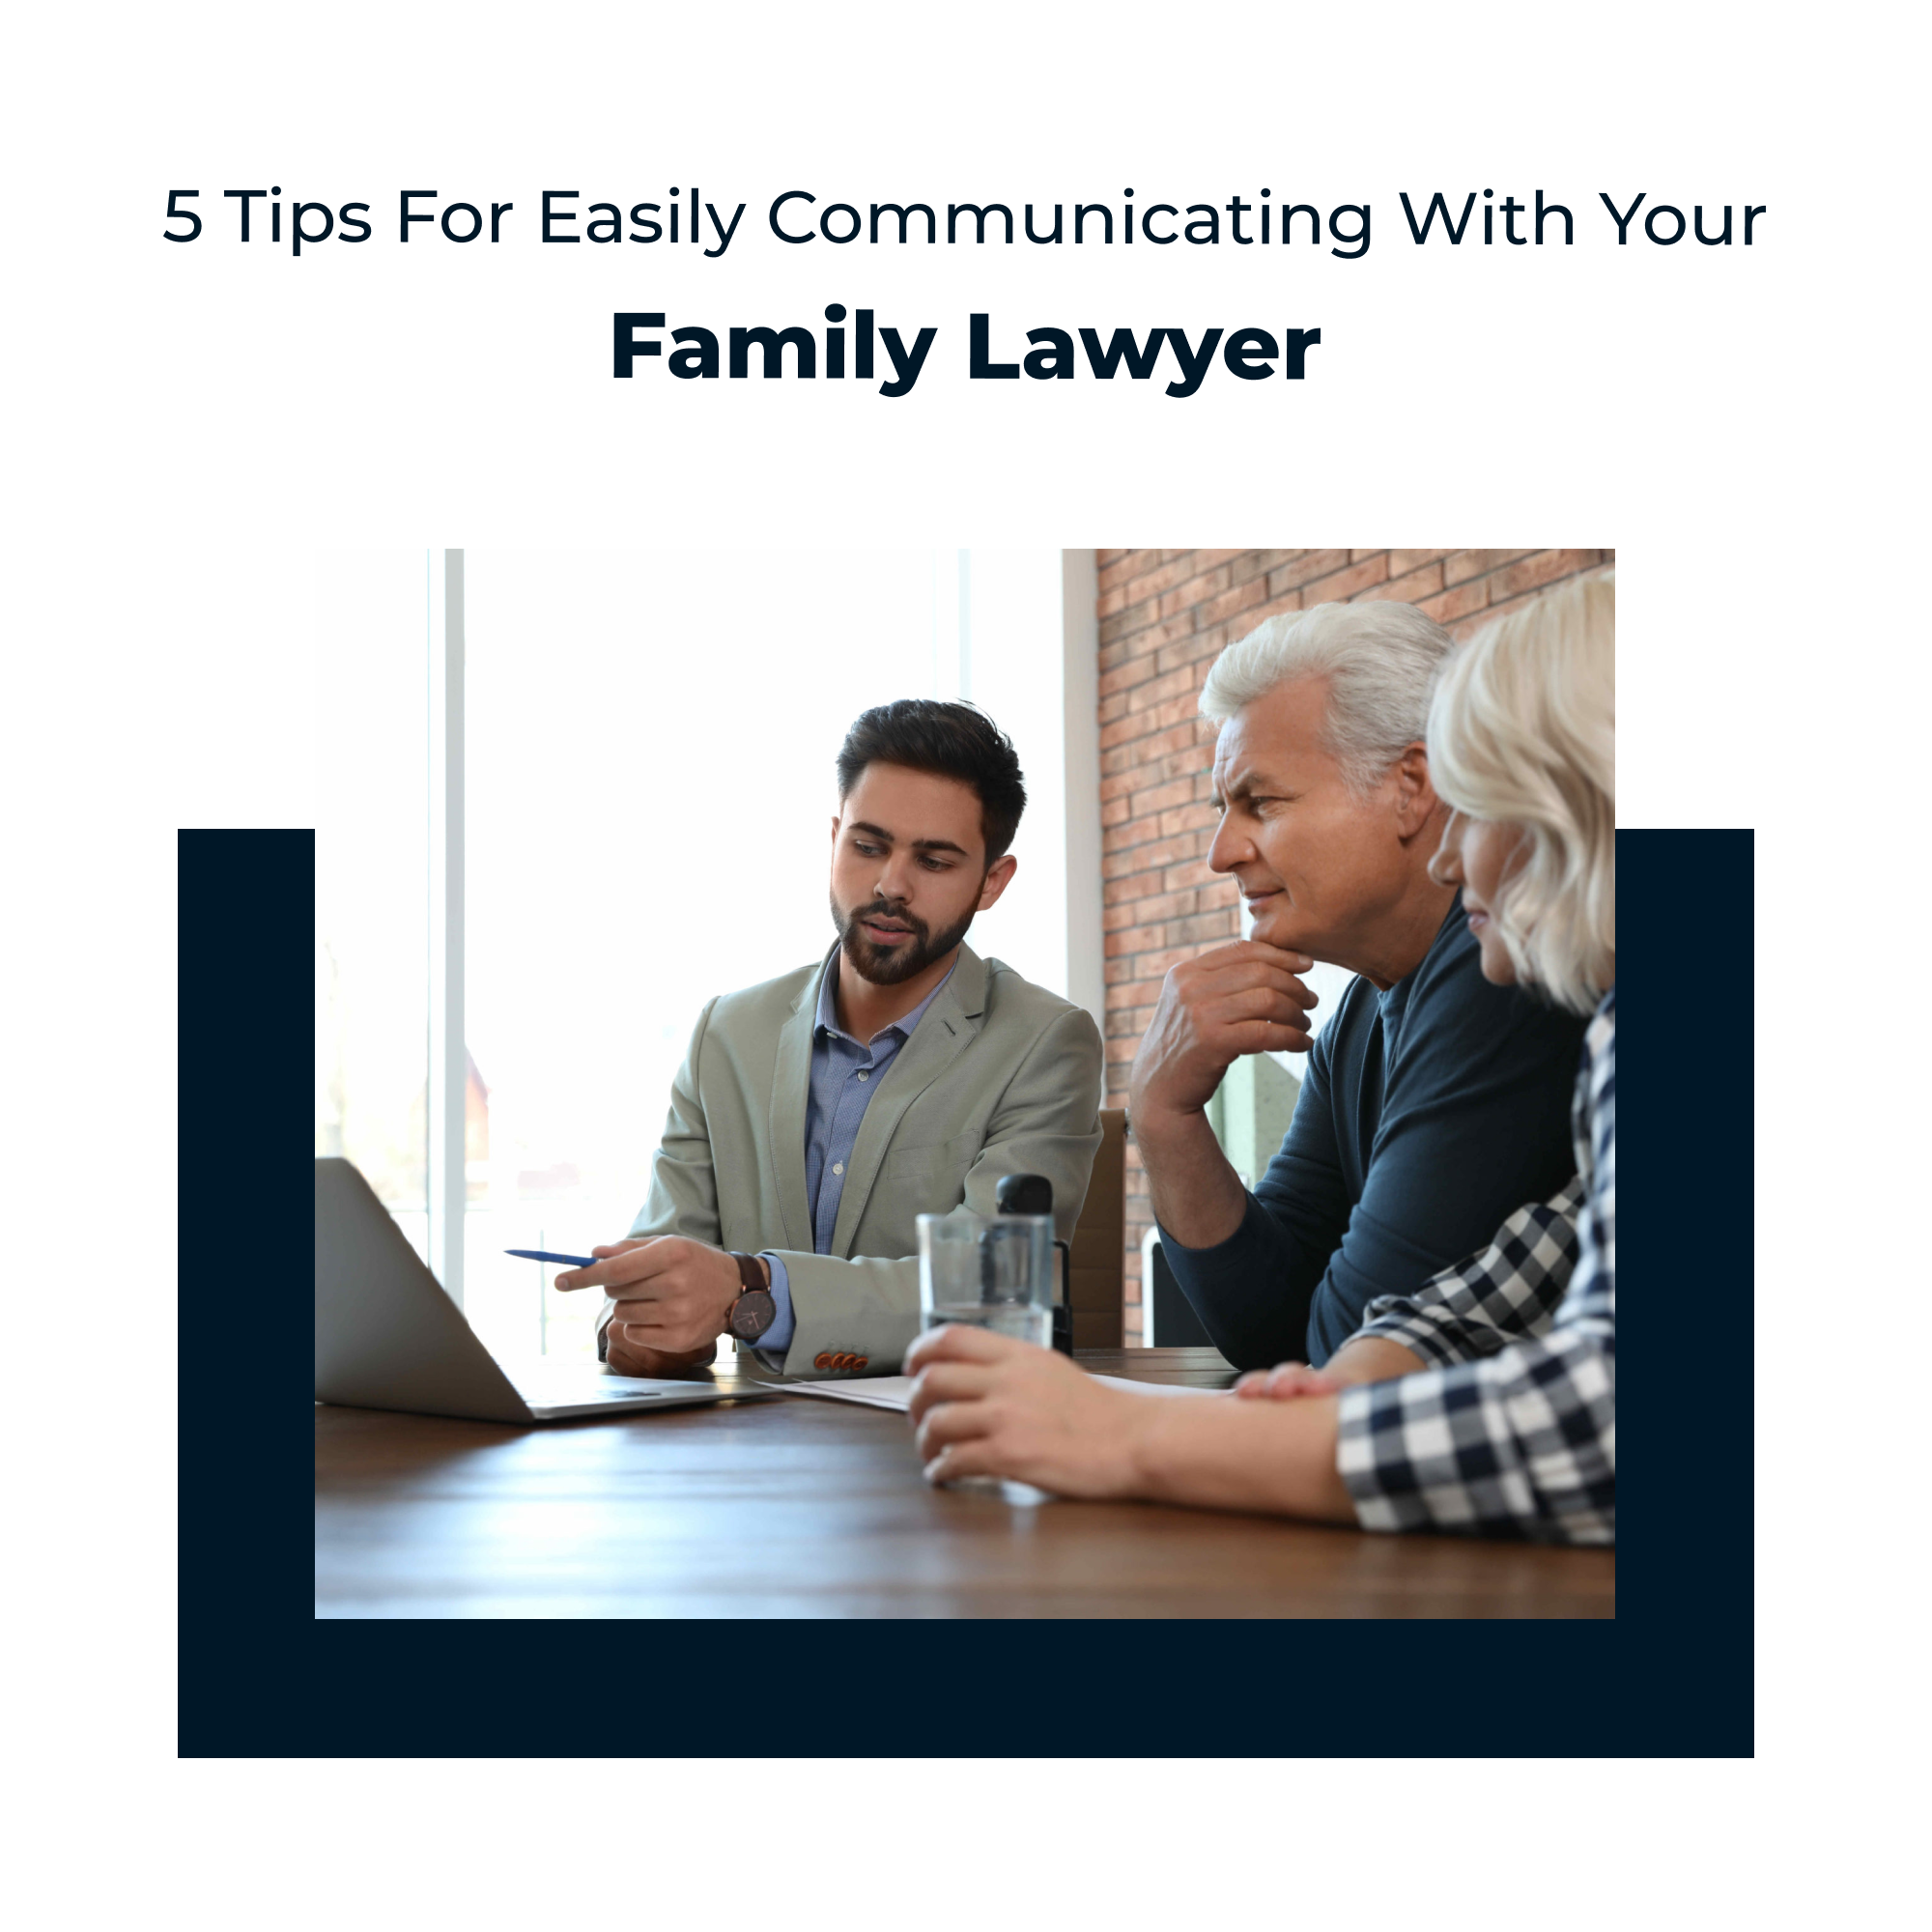 5 Tips for Easily Communicating with Your Family Lawyer